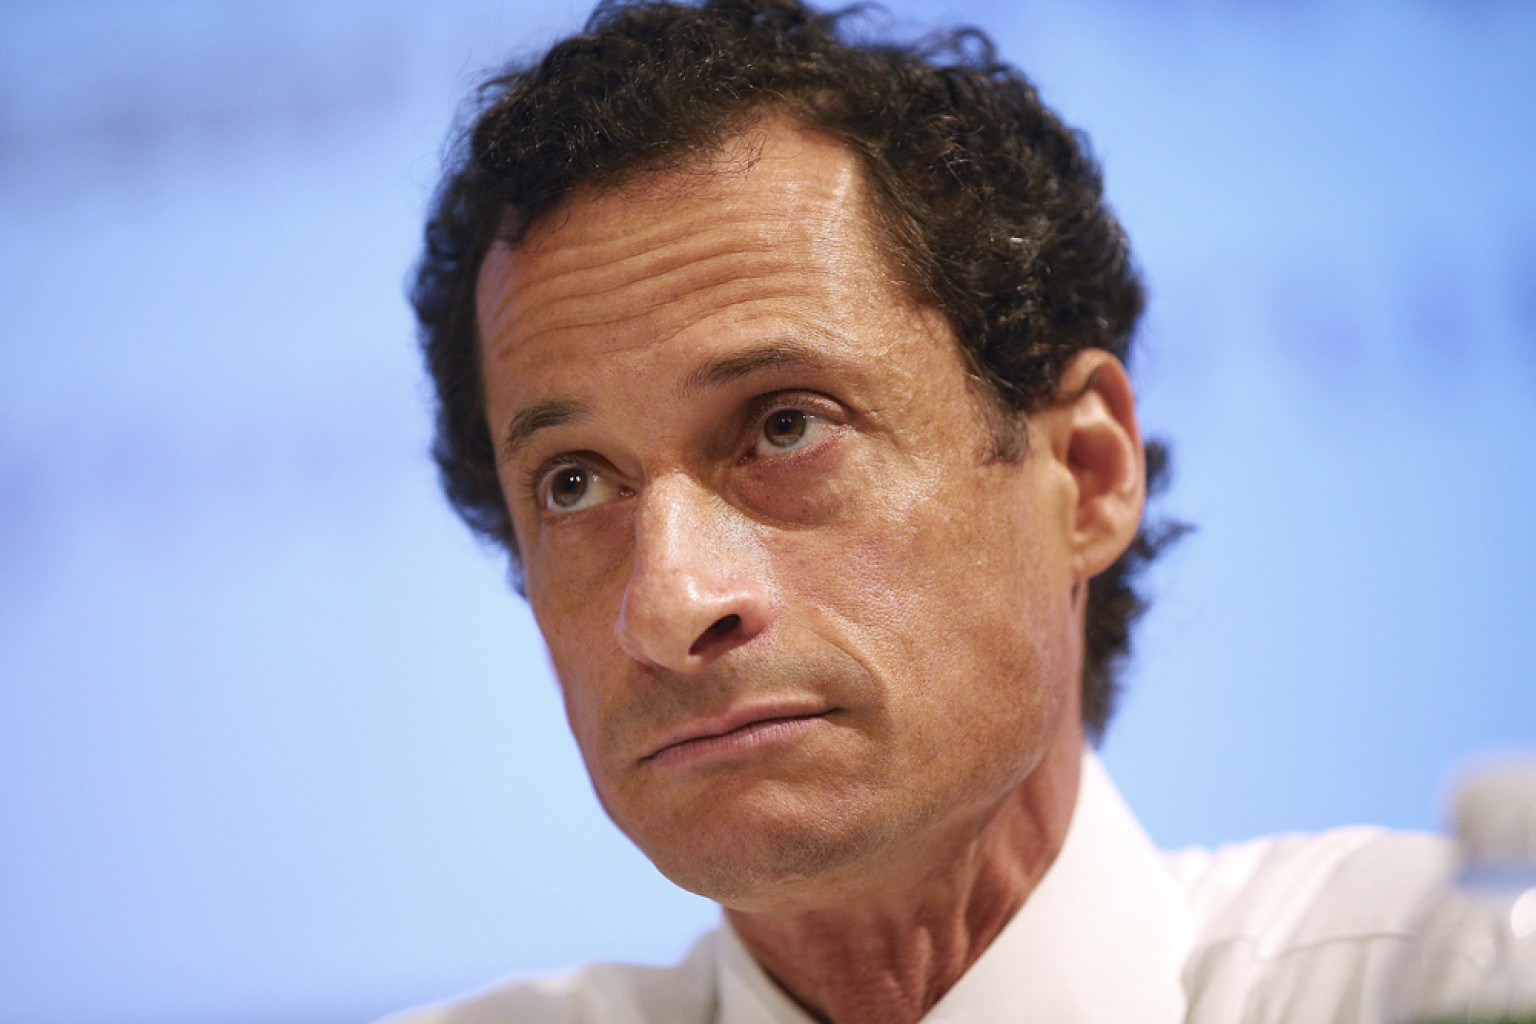 Anthony Weiner Accused Of Engaging In New Sex Chats Using